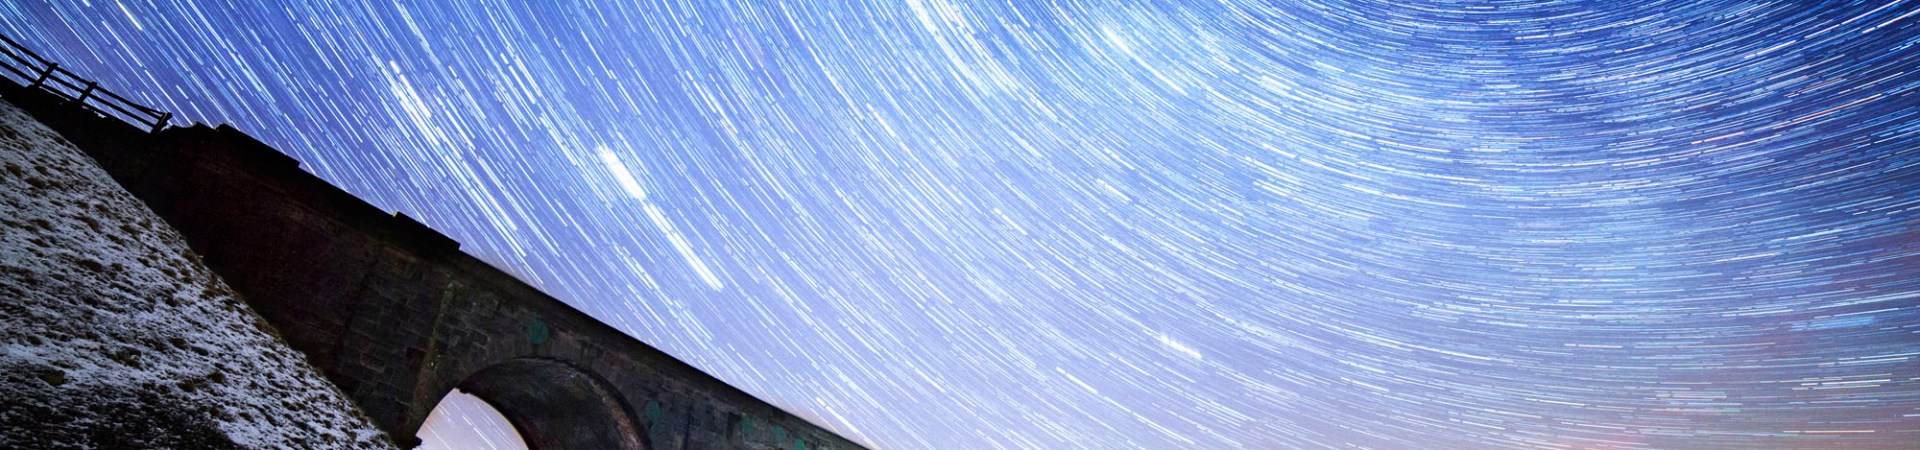 star trails showing earths rotation over a stone viaduct